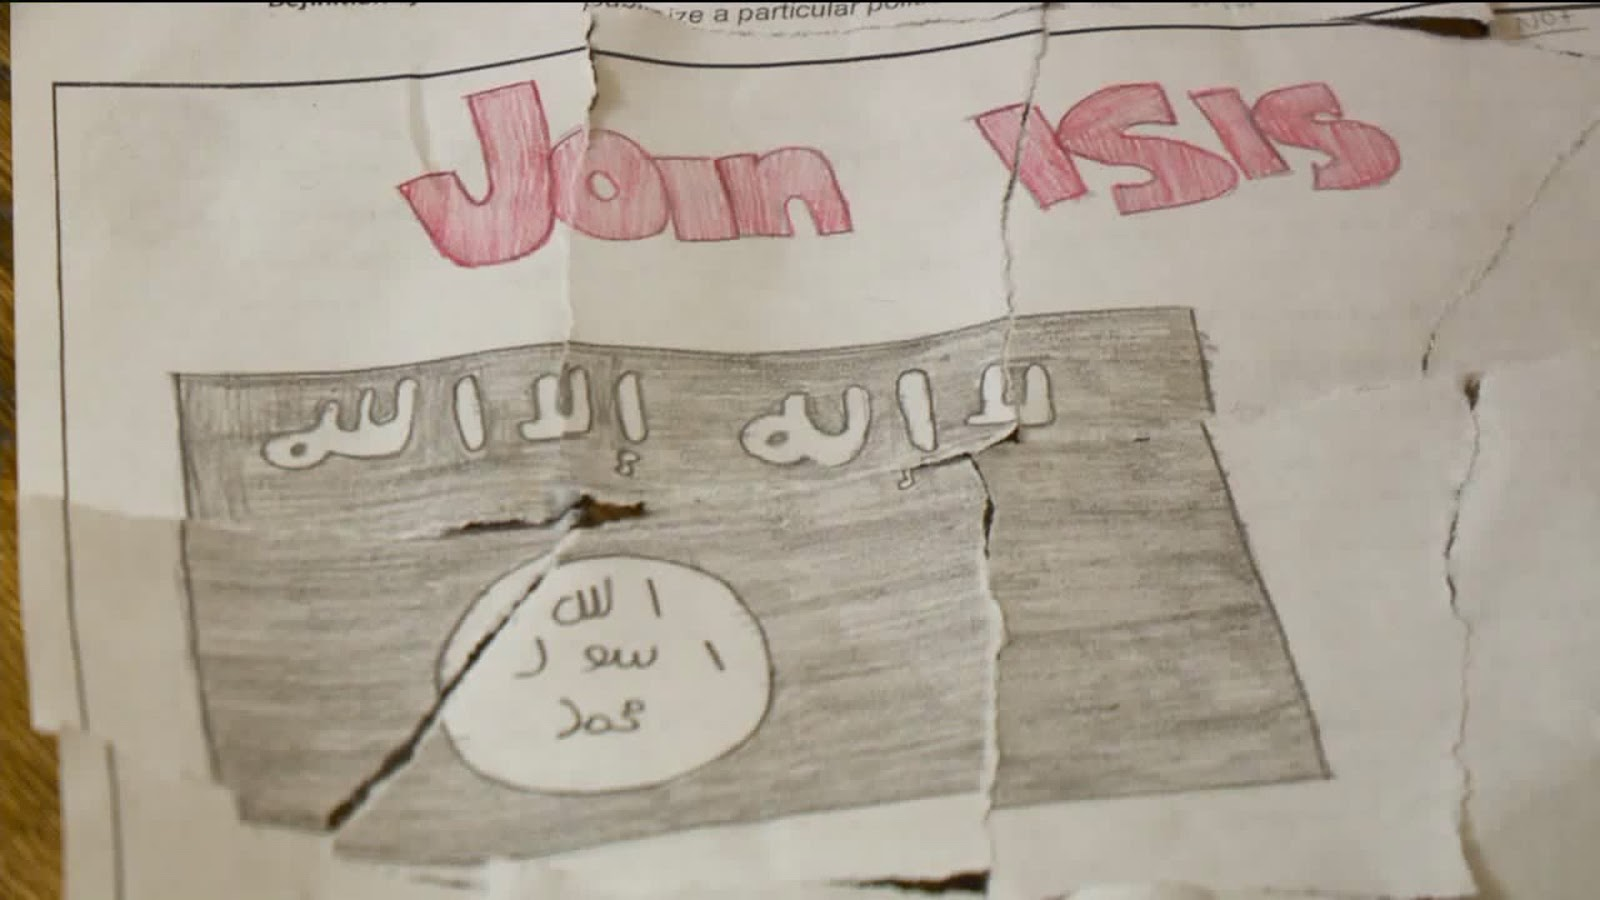 The Federalist Drawing Isis Propaganda Poster Is School